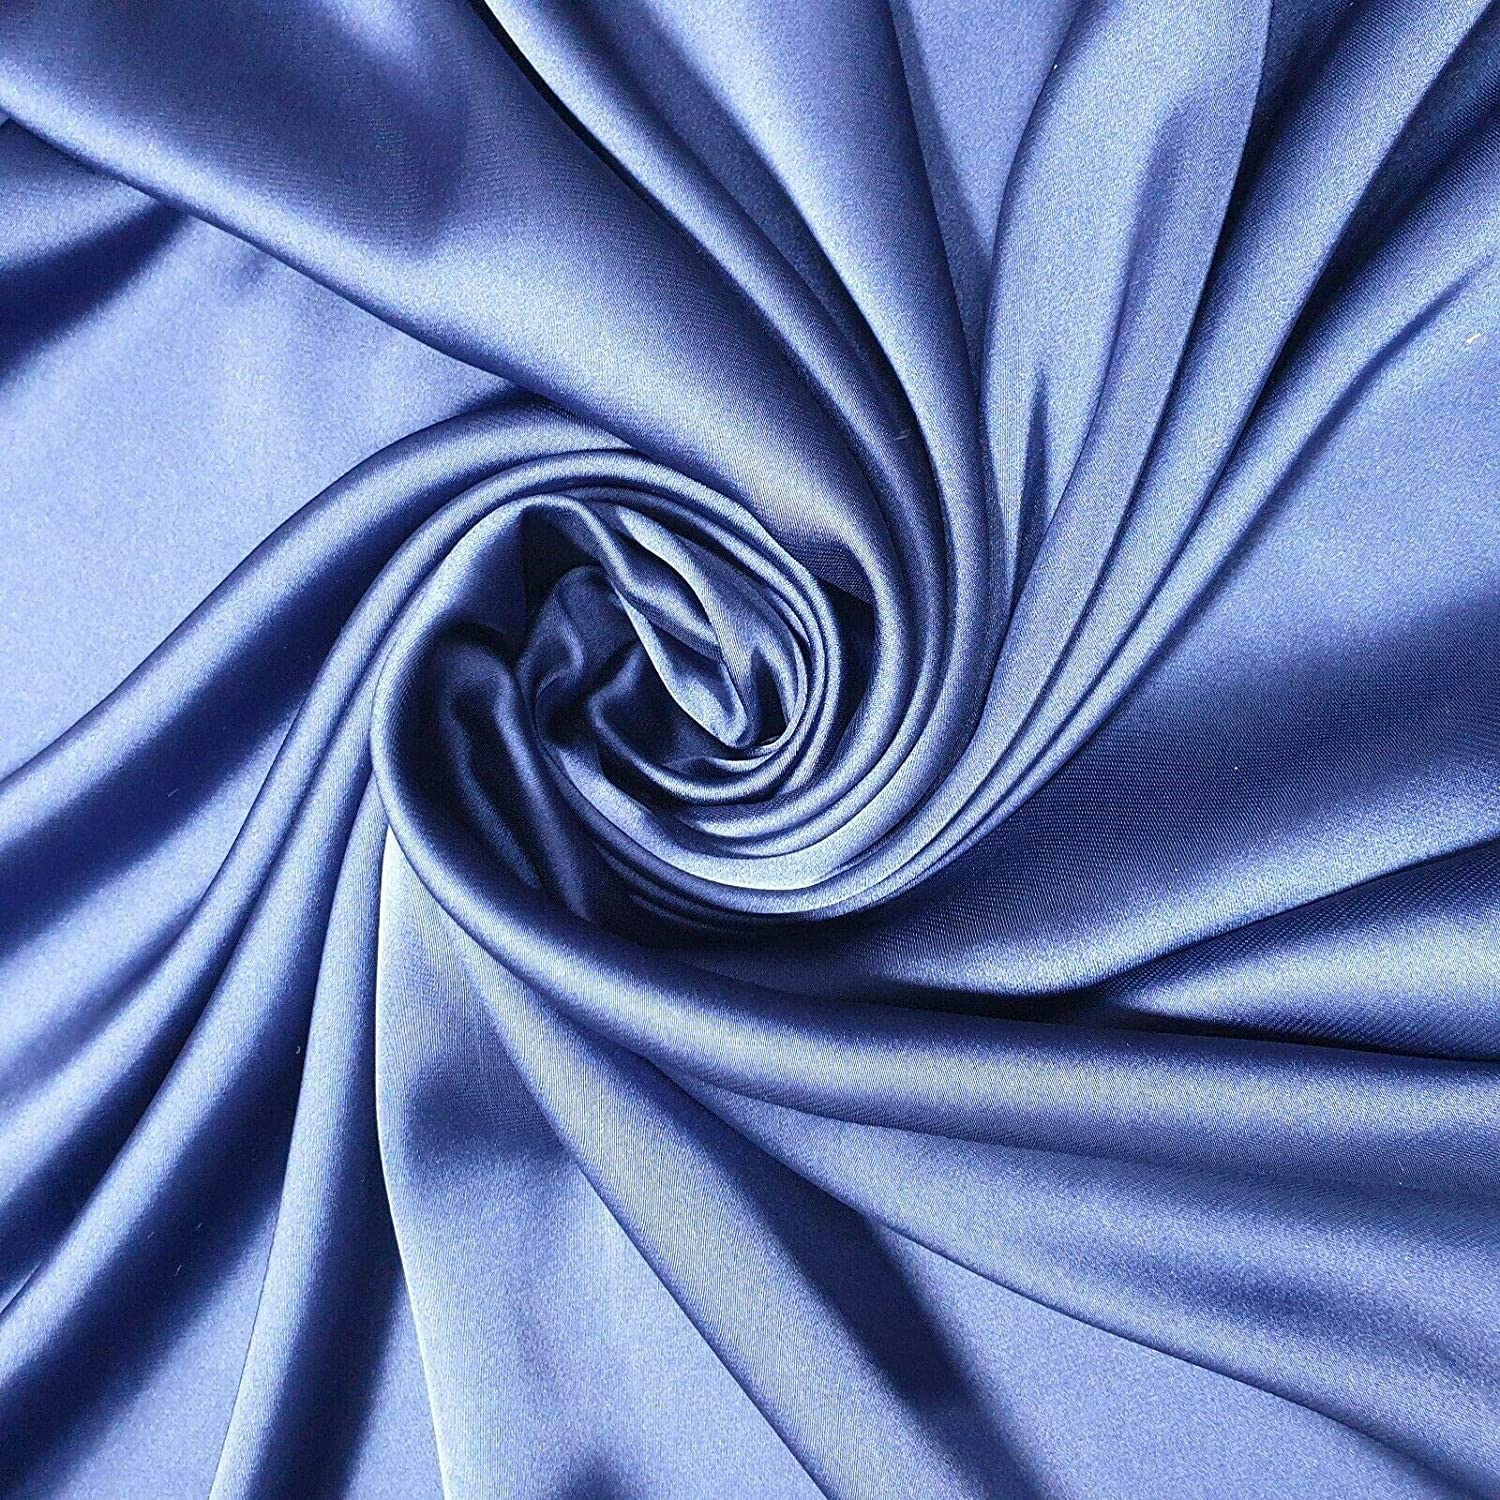 guaranteed Textile Station BBR Silky Charmeuse Lightweight Satin ...